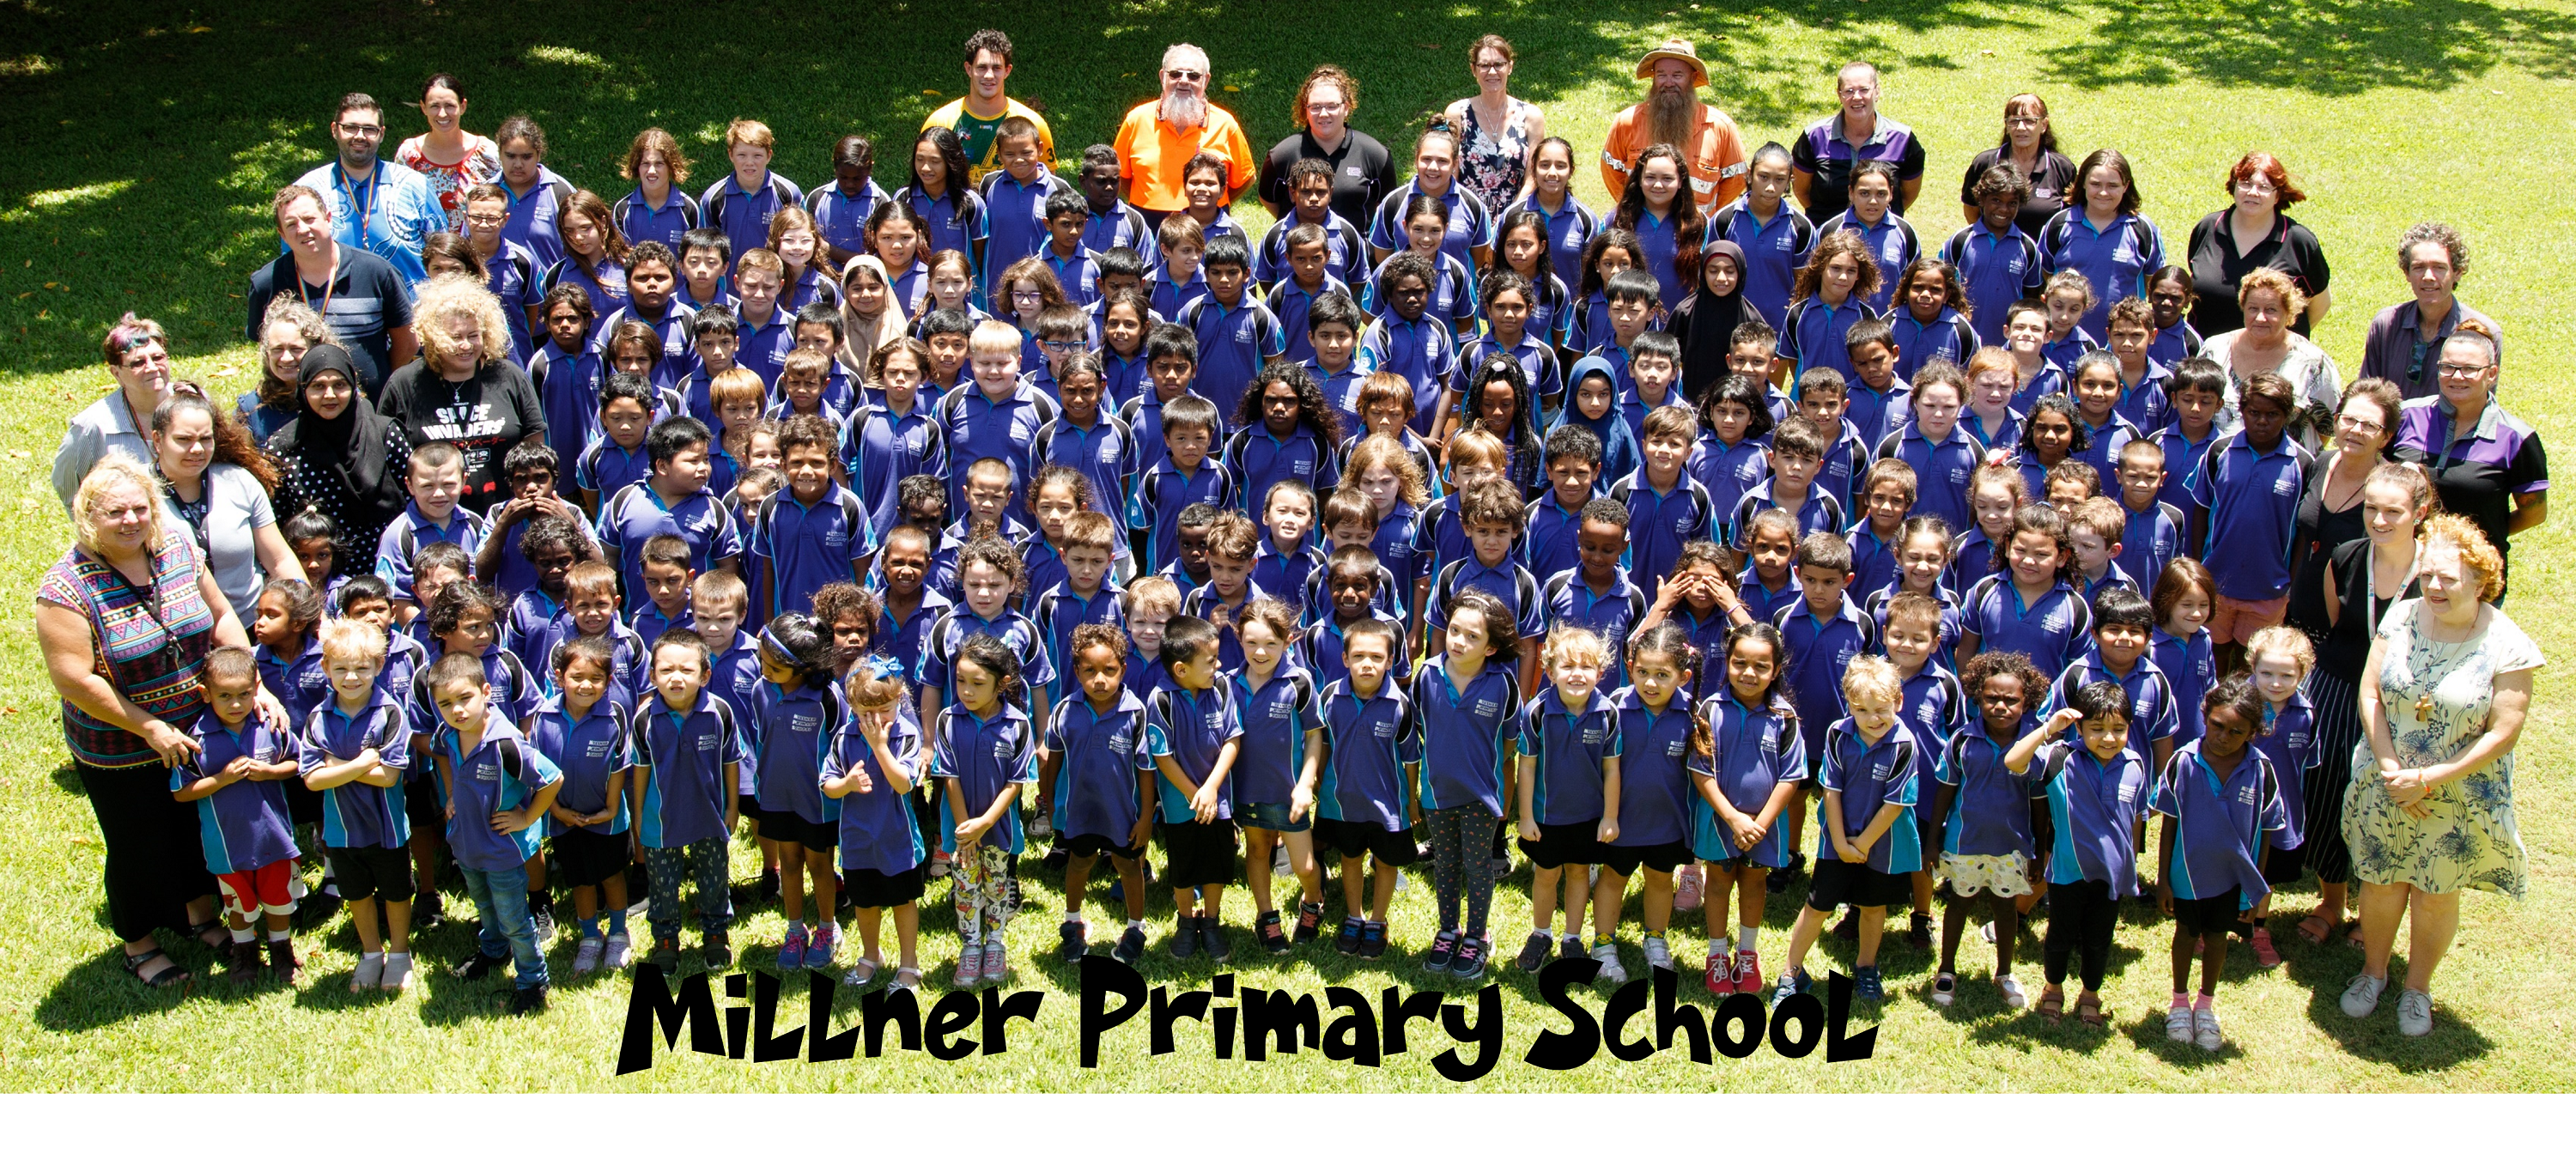 Millner Primary School